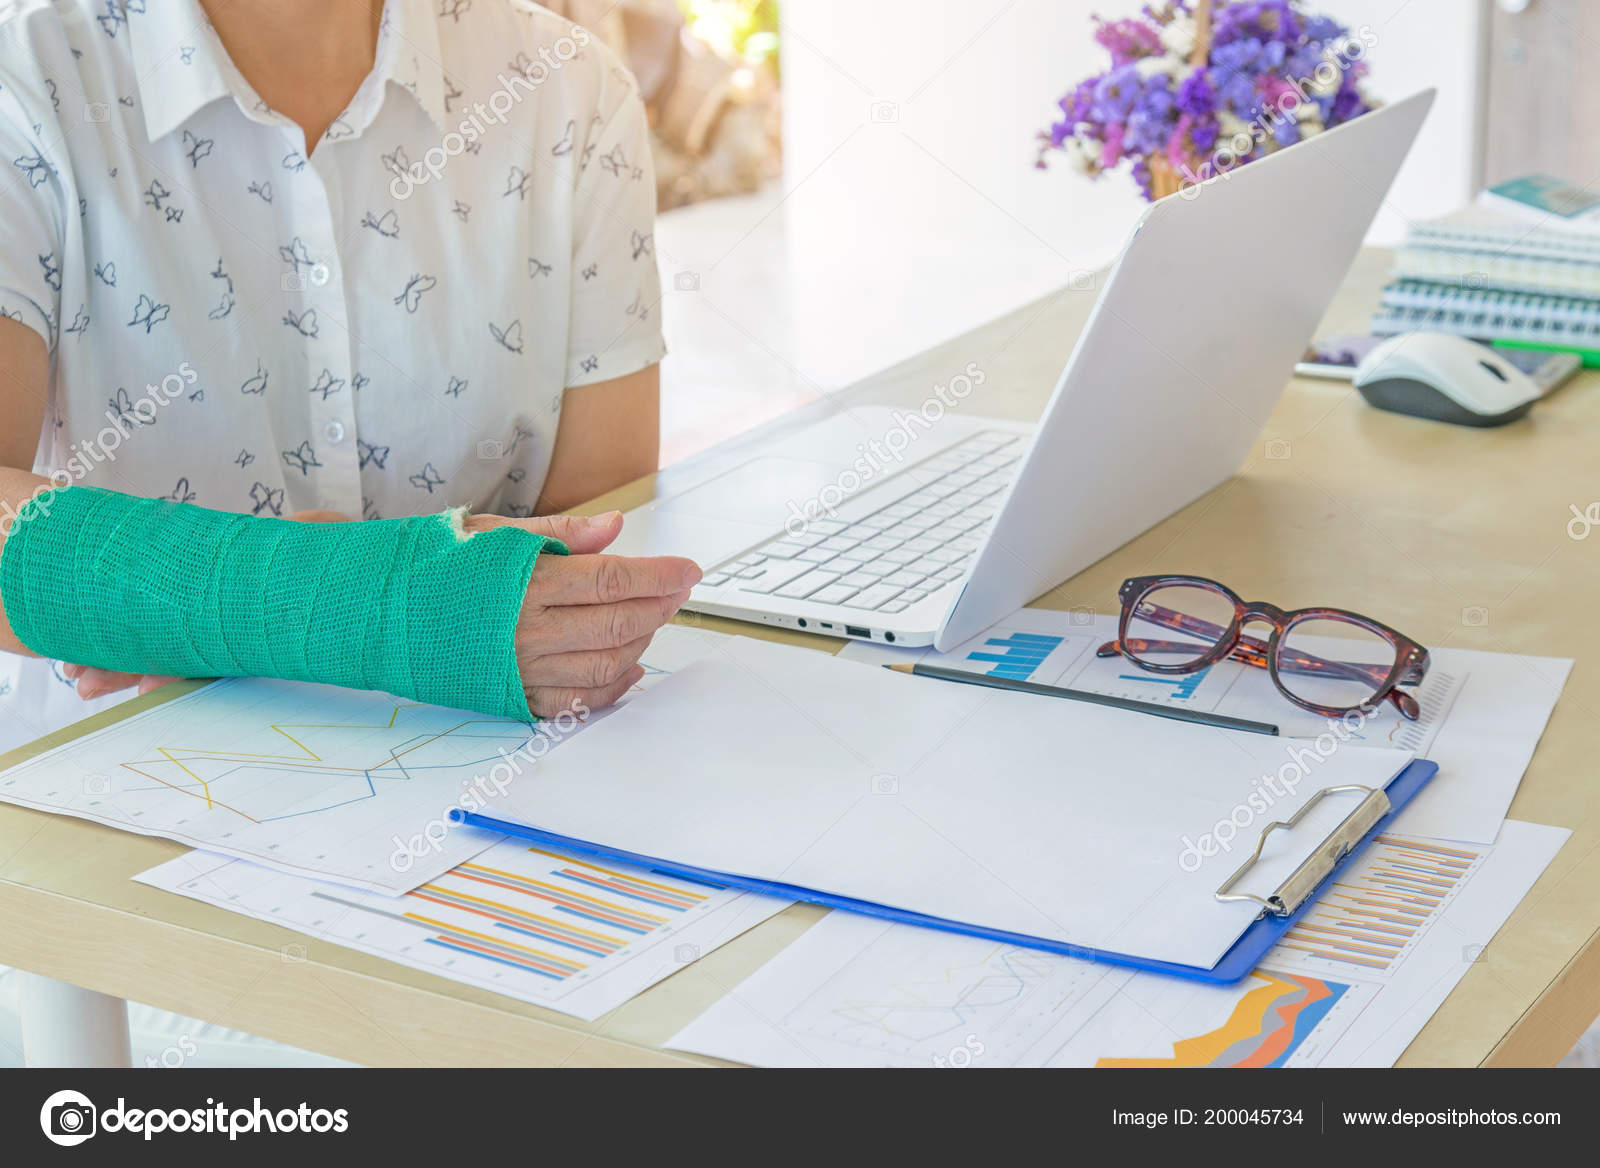 Injured Woman Green Cast Hand Arm Working Laptop Office